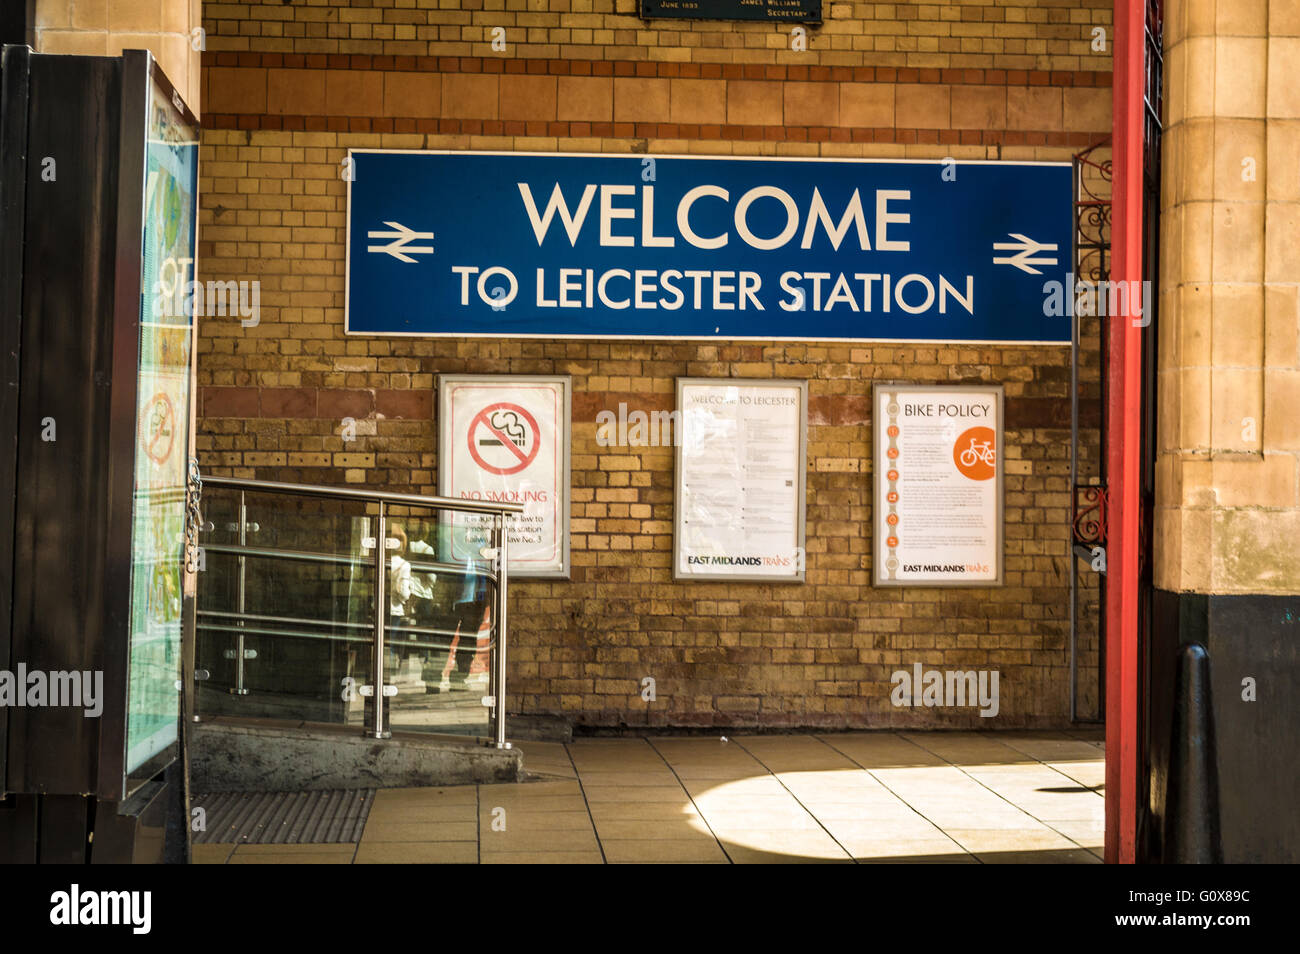 Welcome to Leicester Station - Stock Image